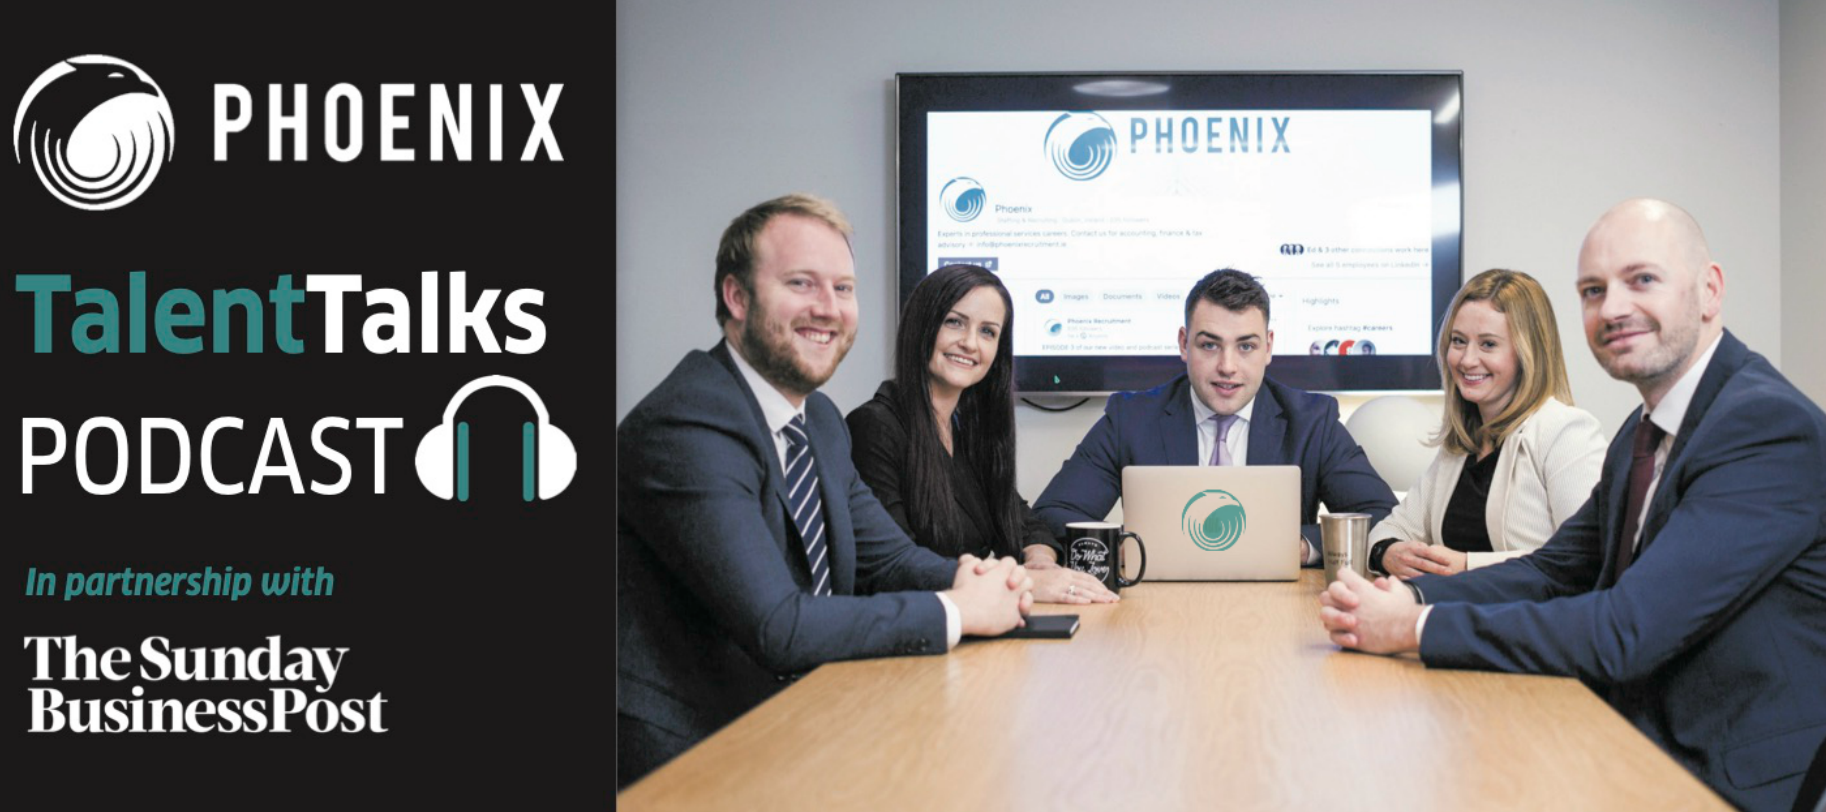 Phoenix Talent Talks in partnership with The Sunday Business Post